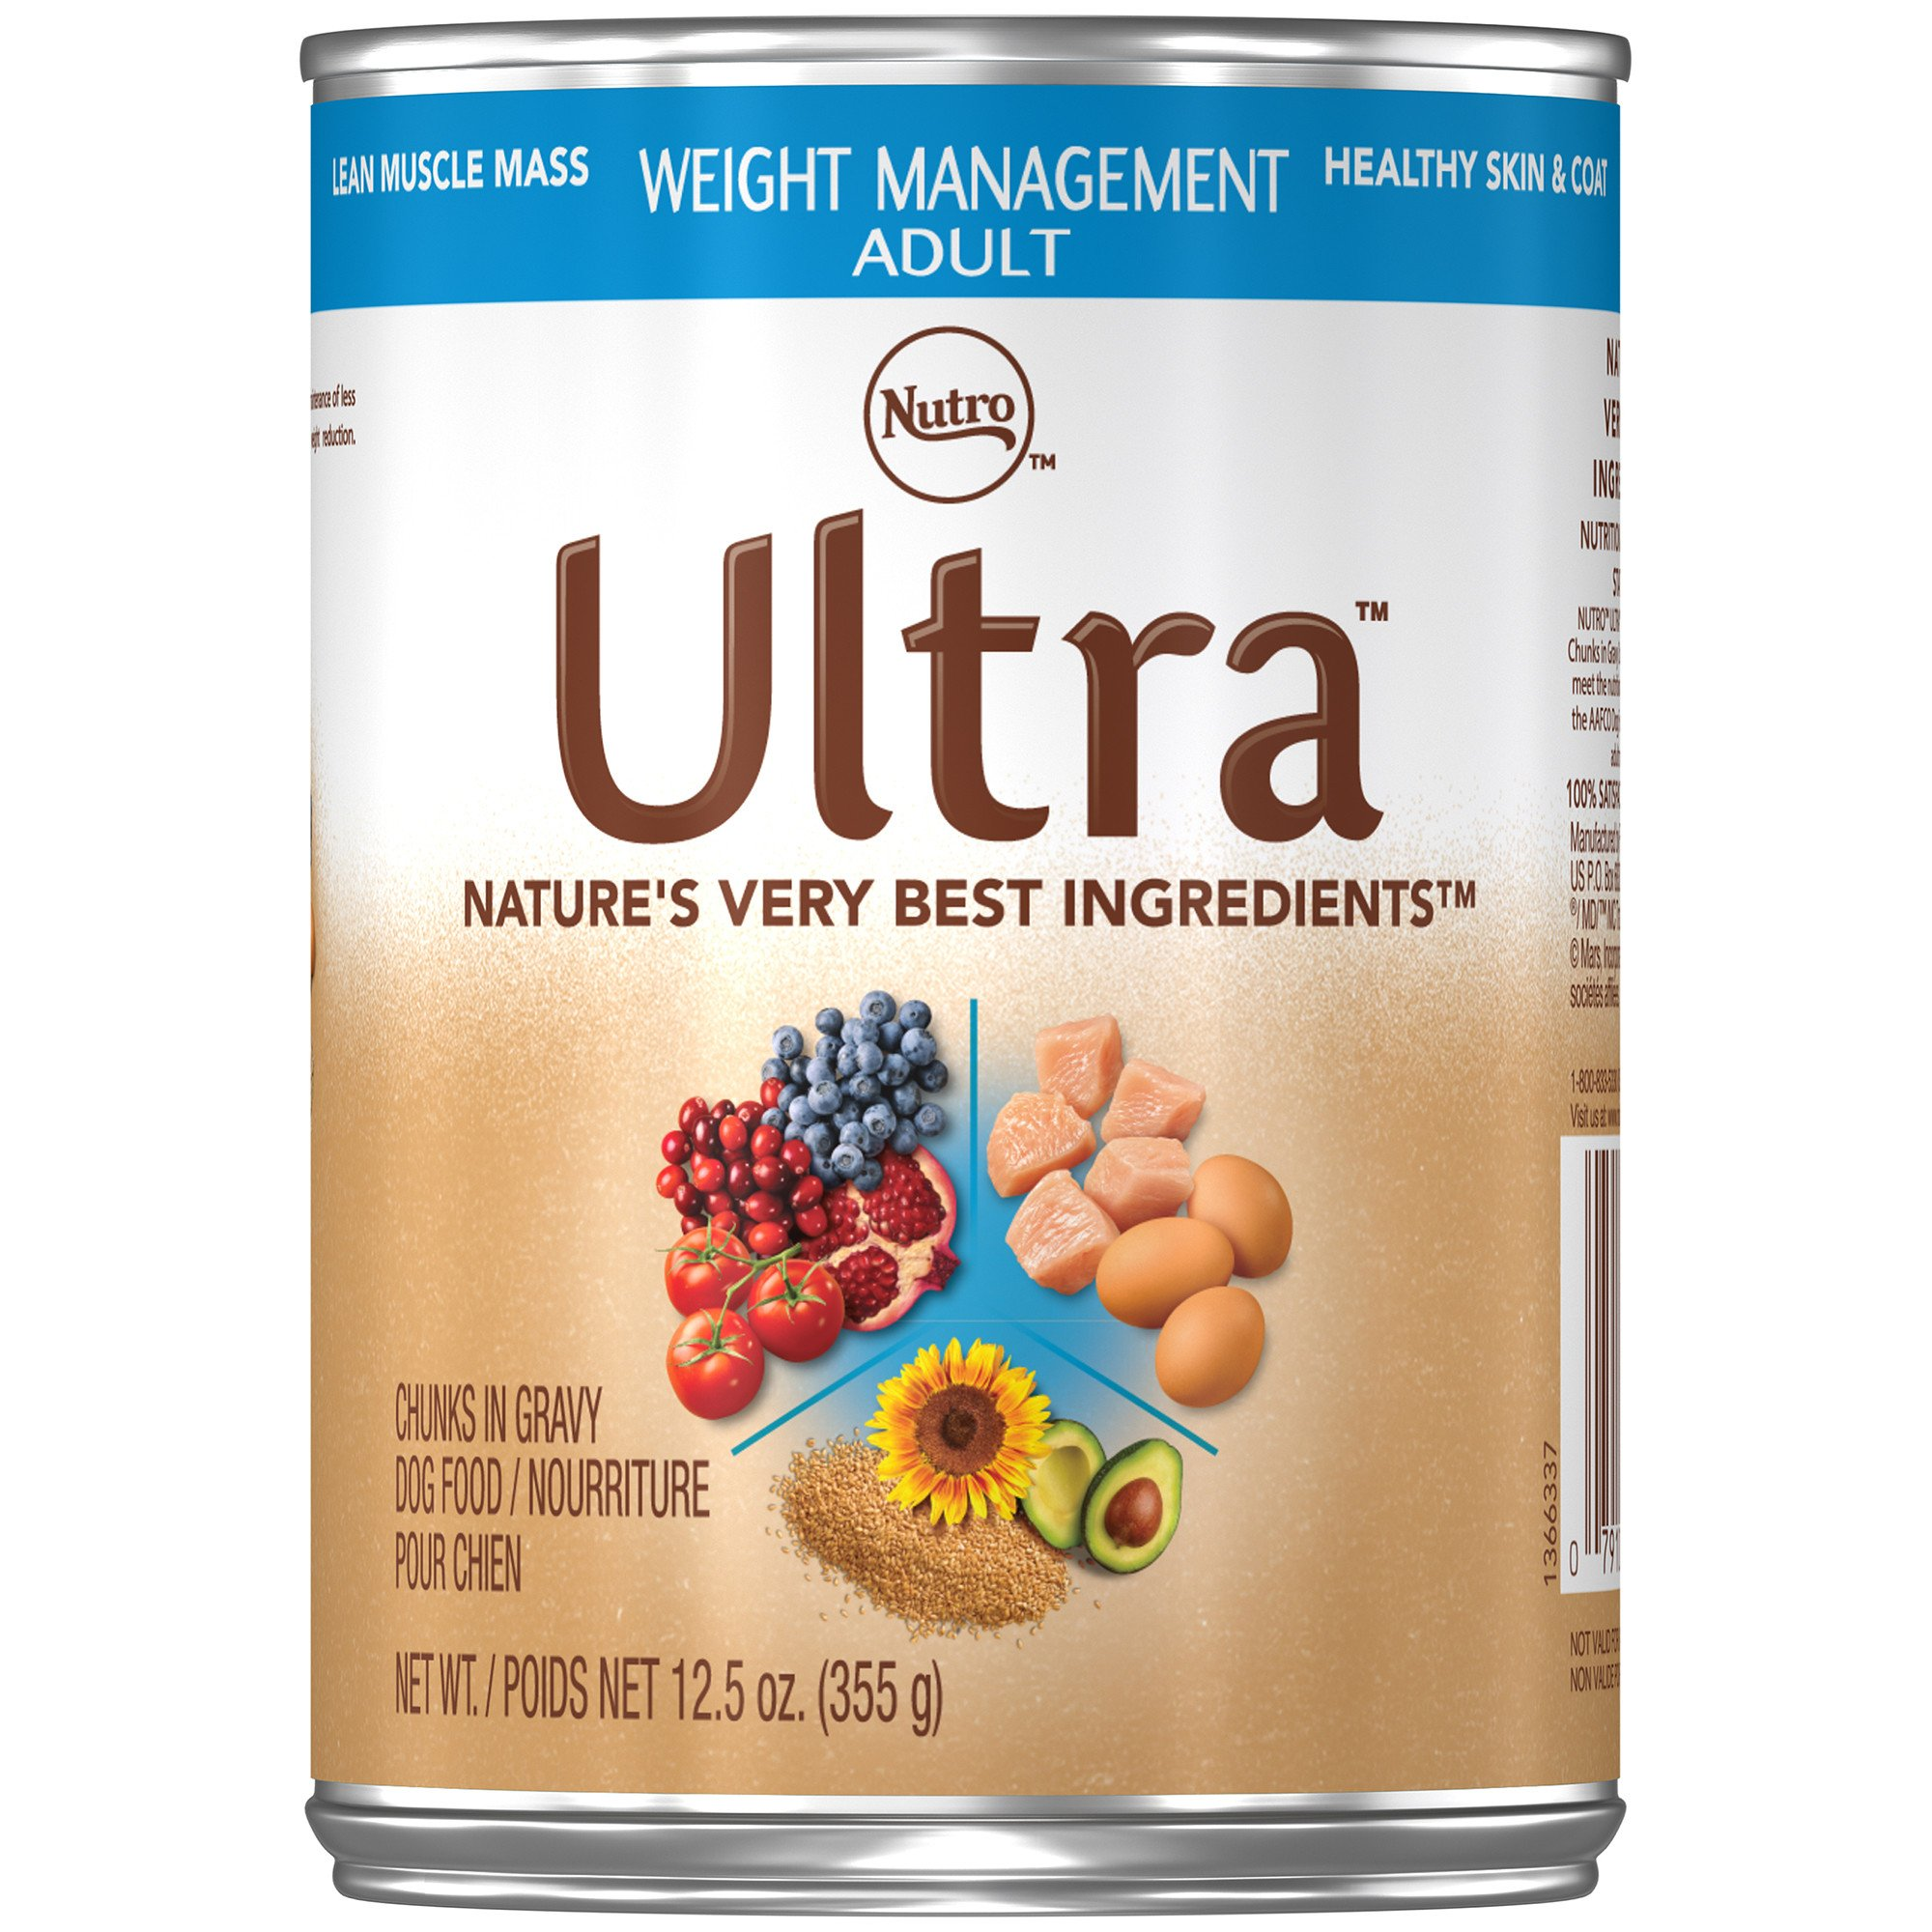 Nutro Ultra Weight Management Chunks in Gravy Adult Canned Dog Food